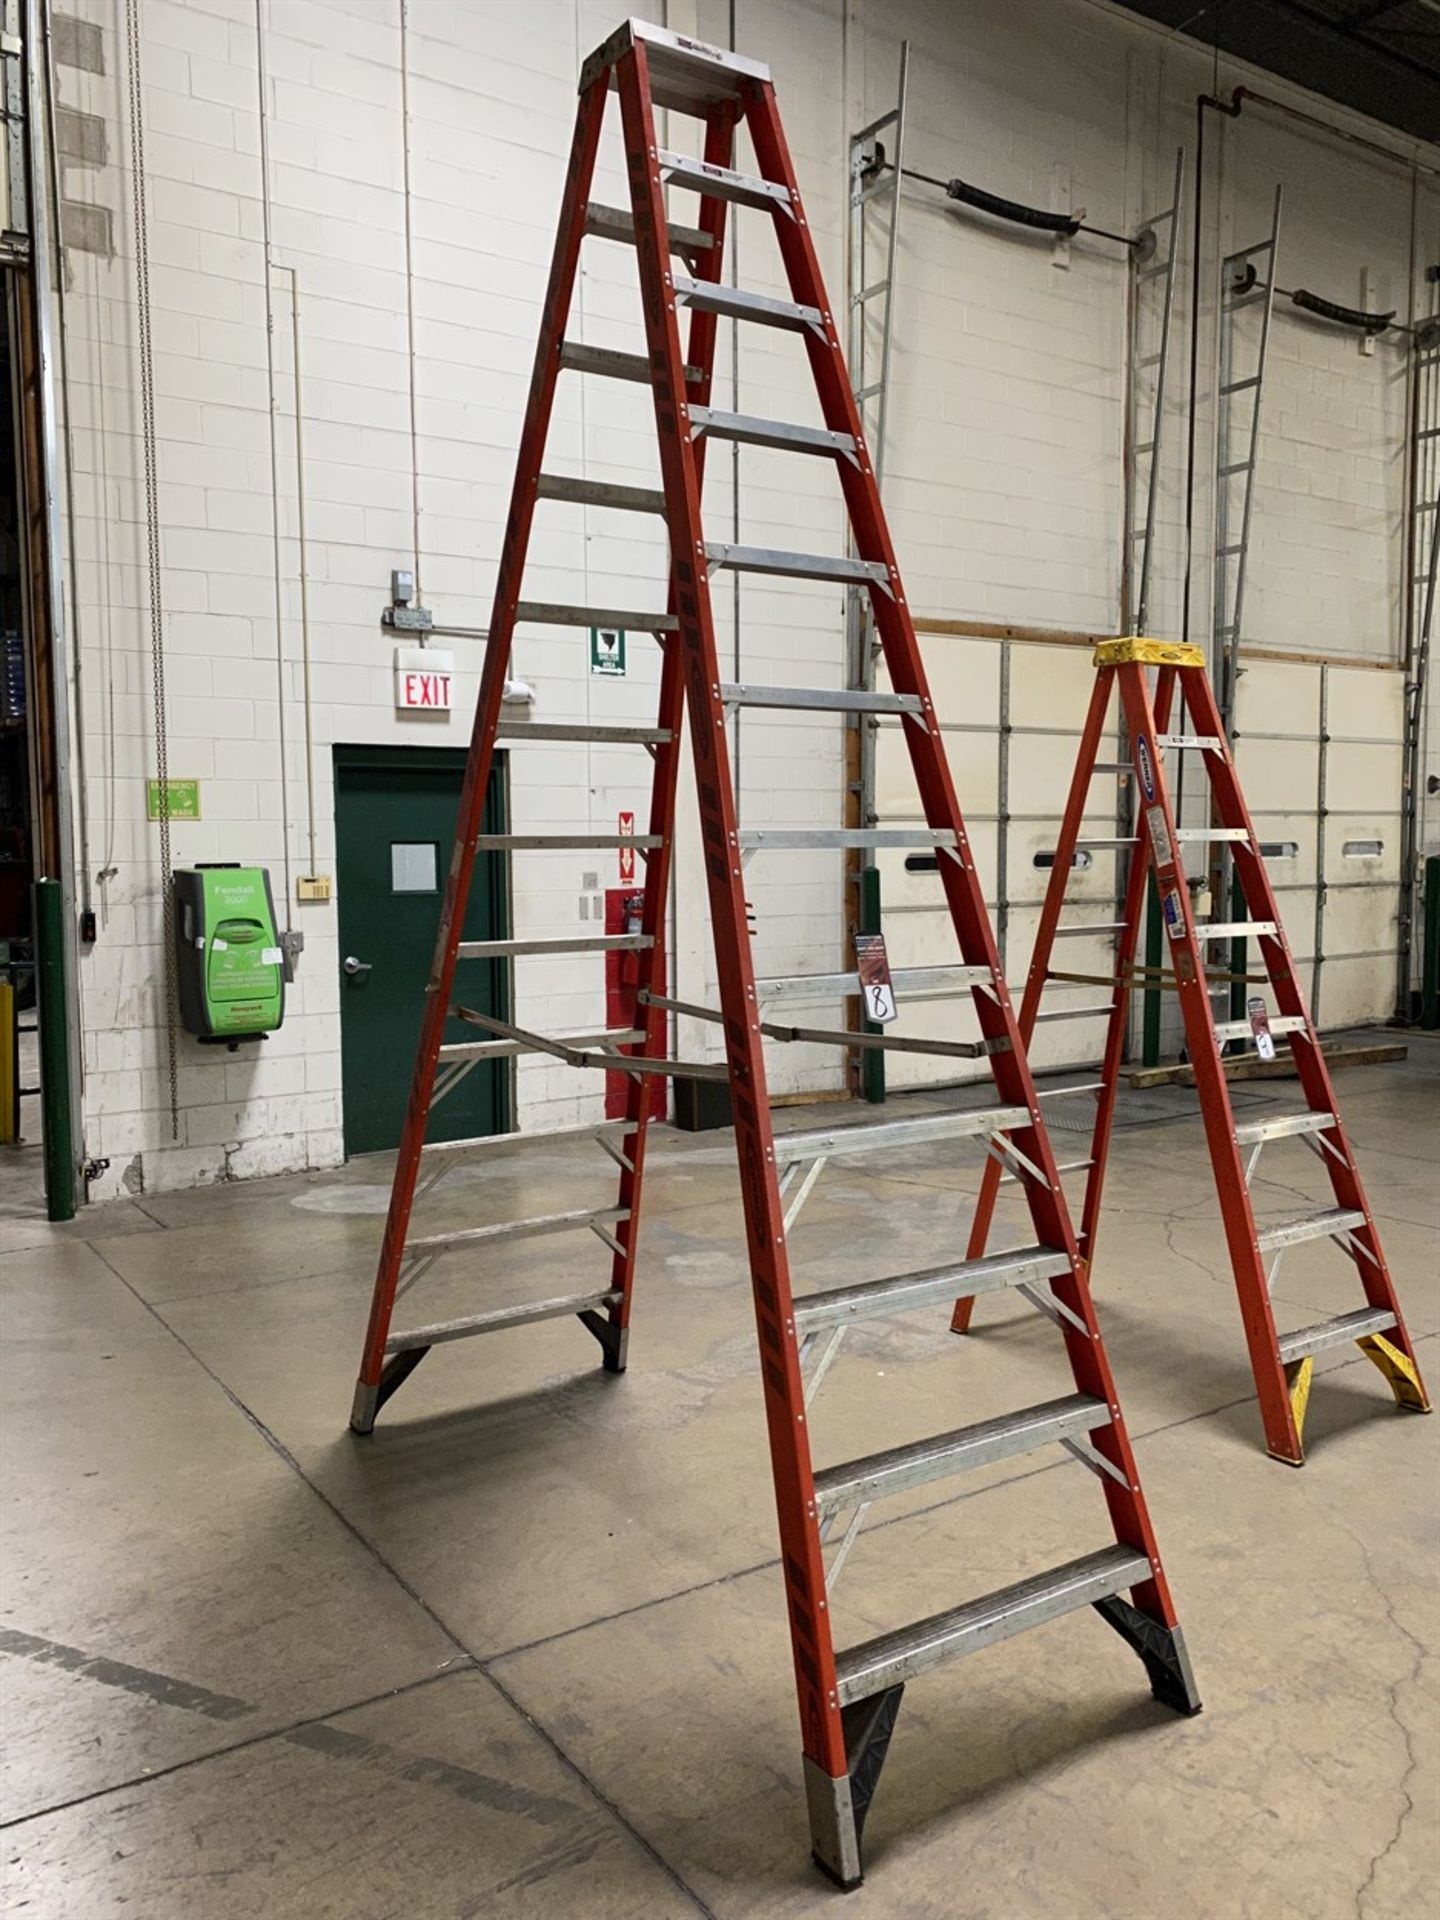 Lot 8 - WERNER 12' Fiberglass Ladder